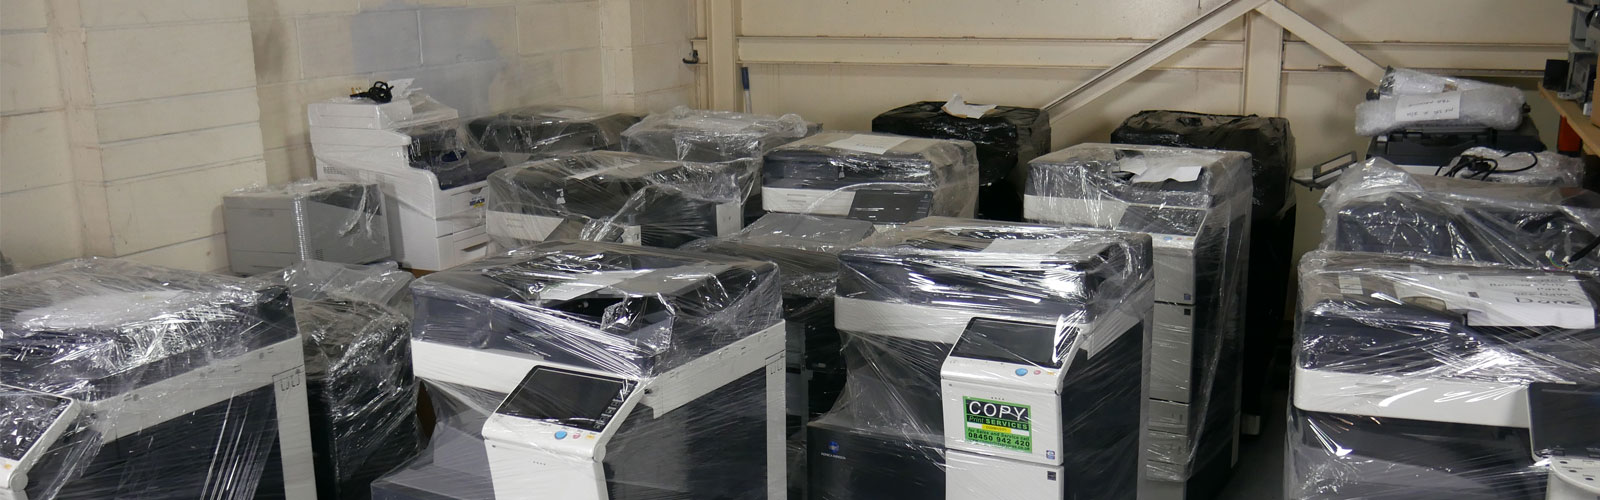 packed refurbished copiers for sale